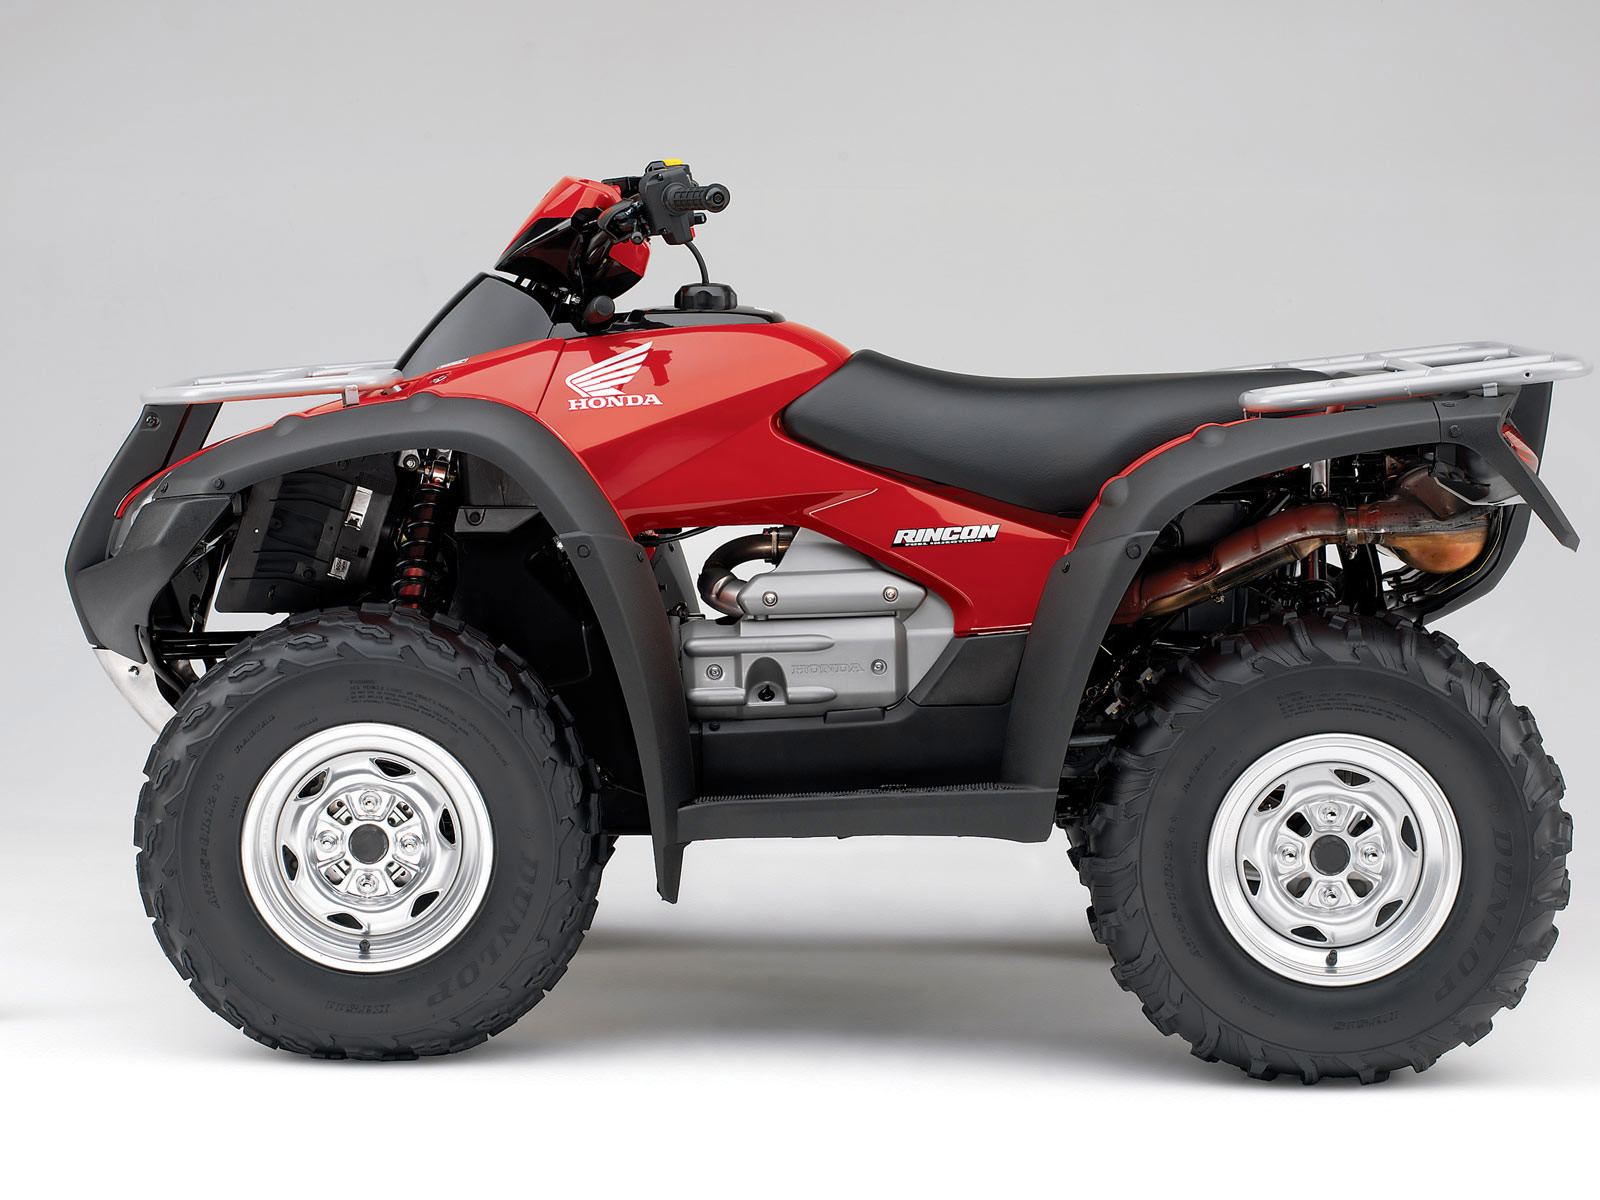 honda atv pictures 2006 fourtrax rincon insurance info. Black Bedroom Furniture Sets. Home Design Ideas